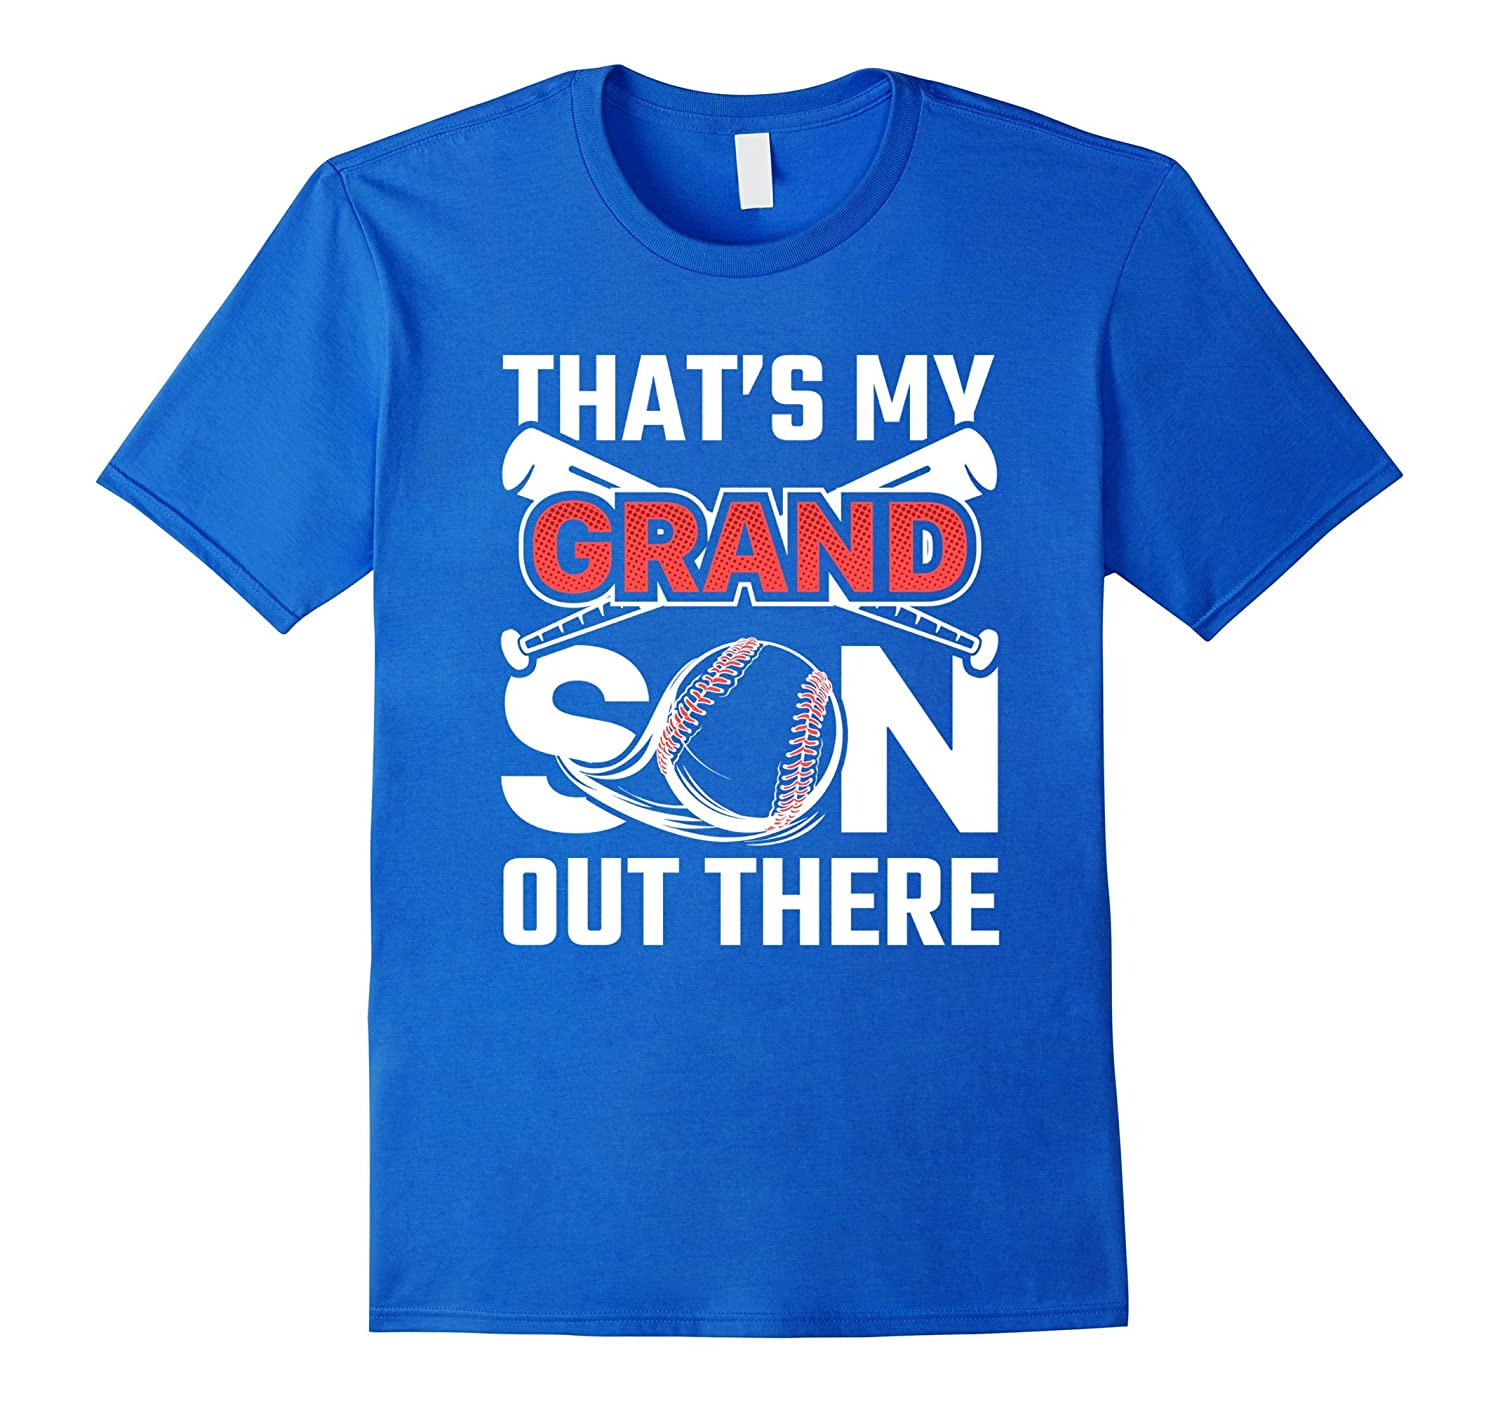 That's My Grandson Out There Baseball Gift Grandpa T-Shirt